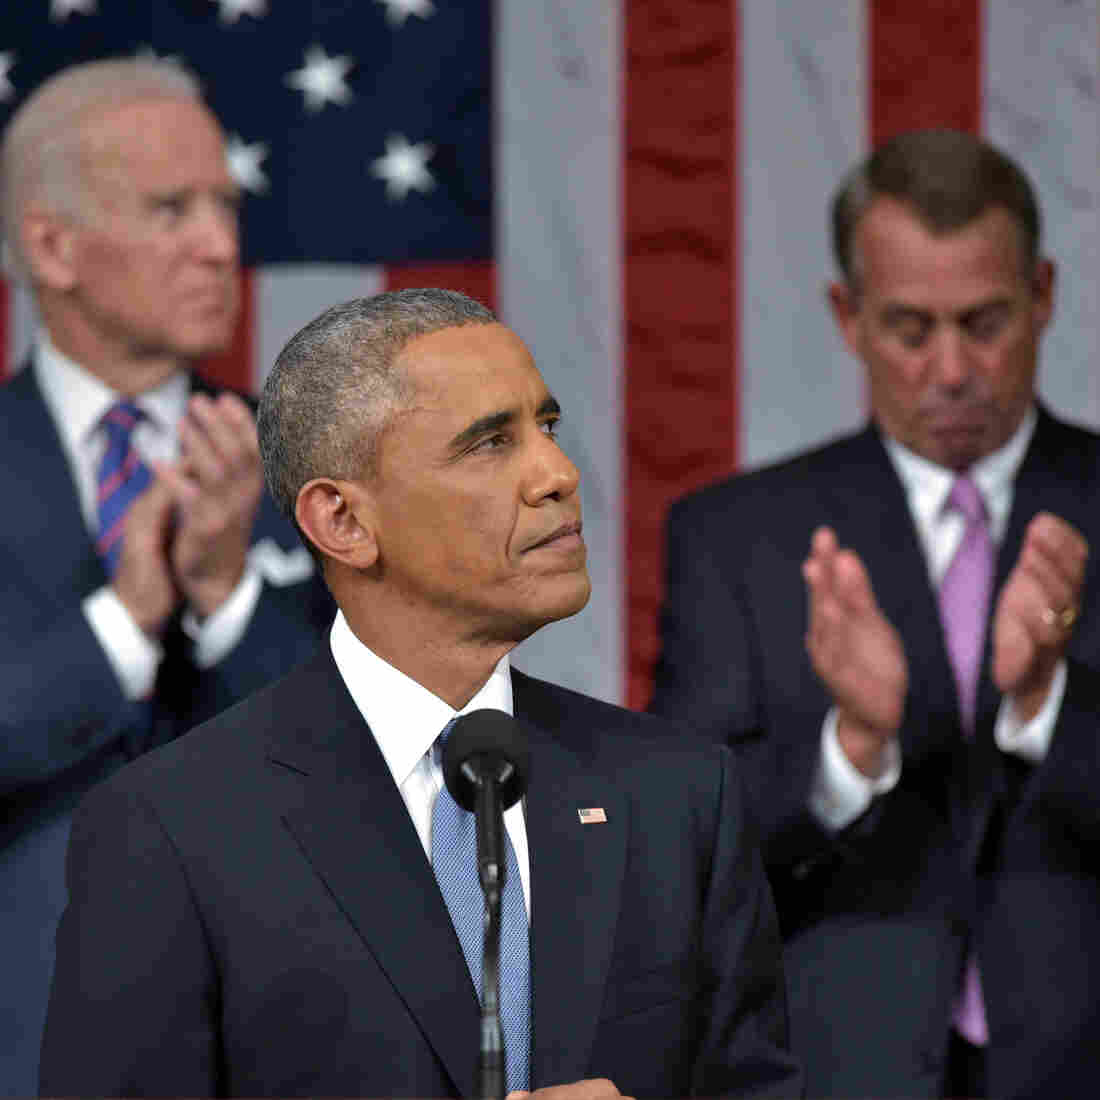 Obama State Of The Union Seeks To 'Turn The Page' To A Brighter Chapter